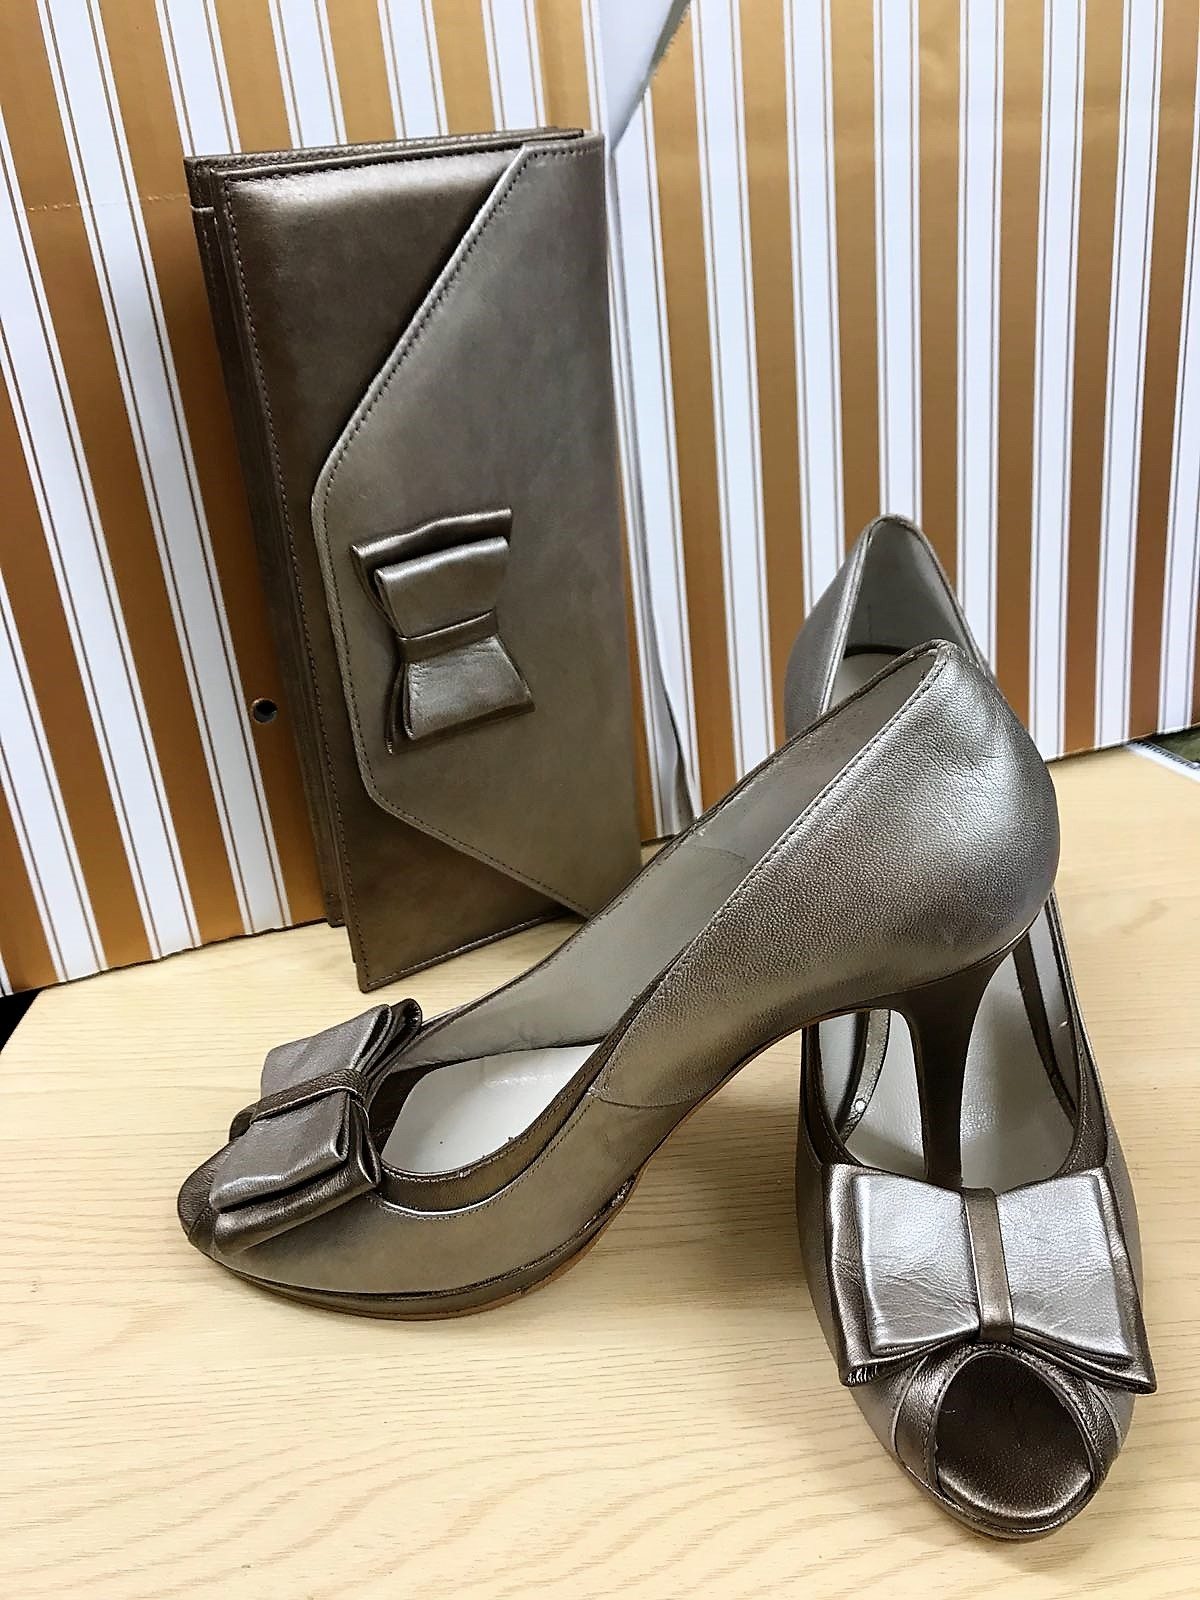 Mary G Shoes